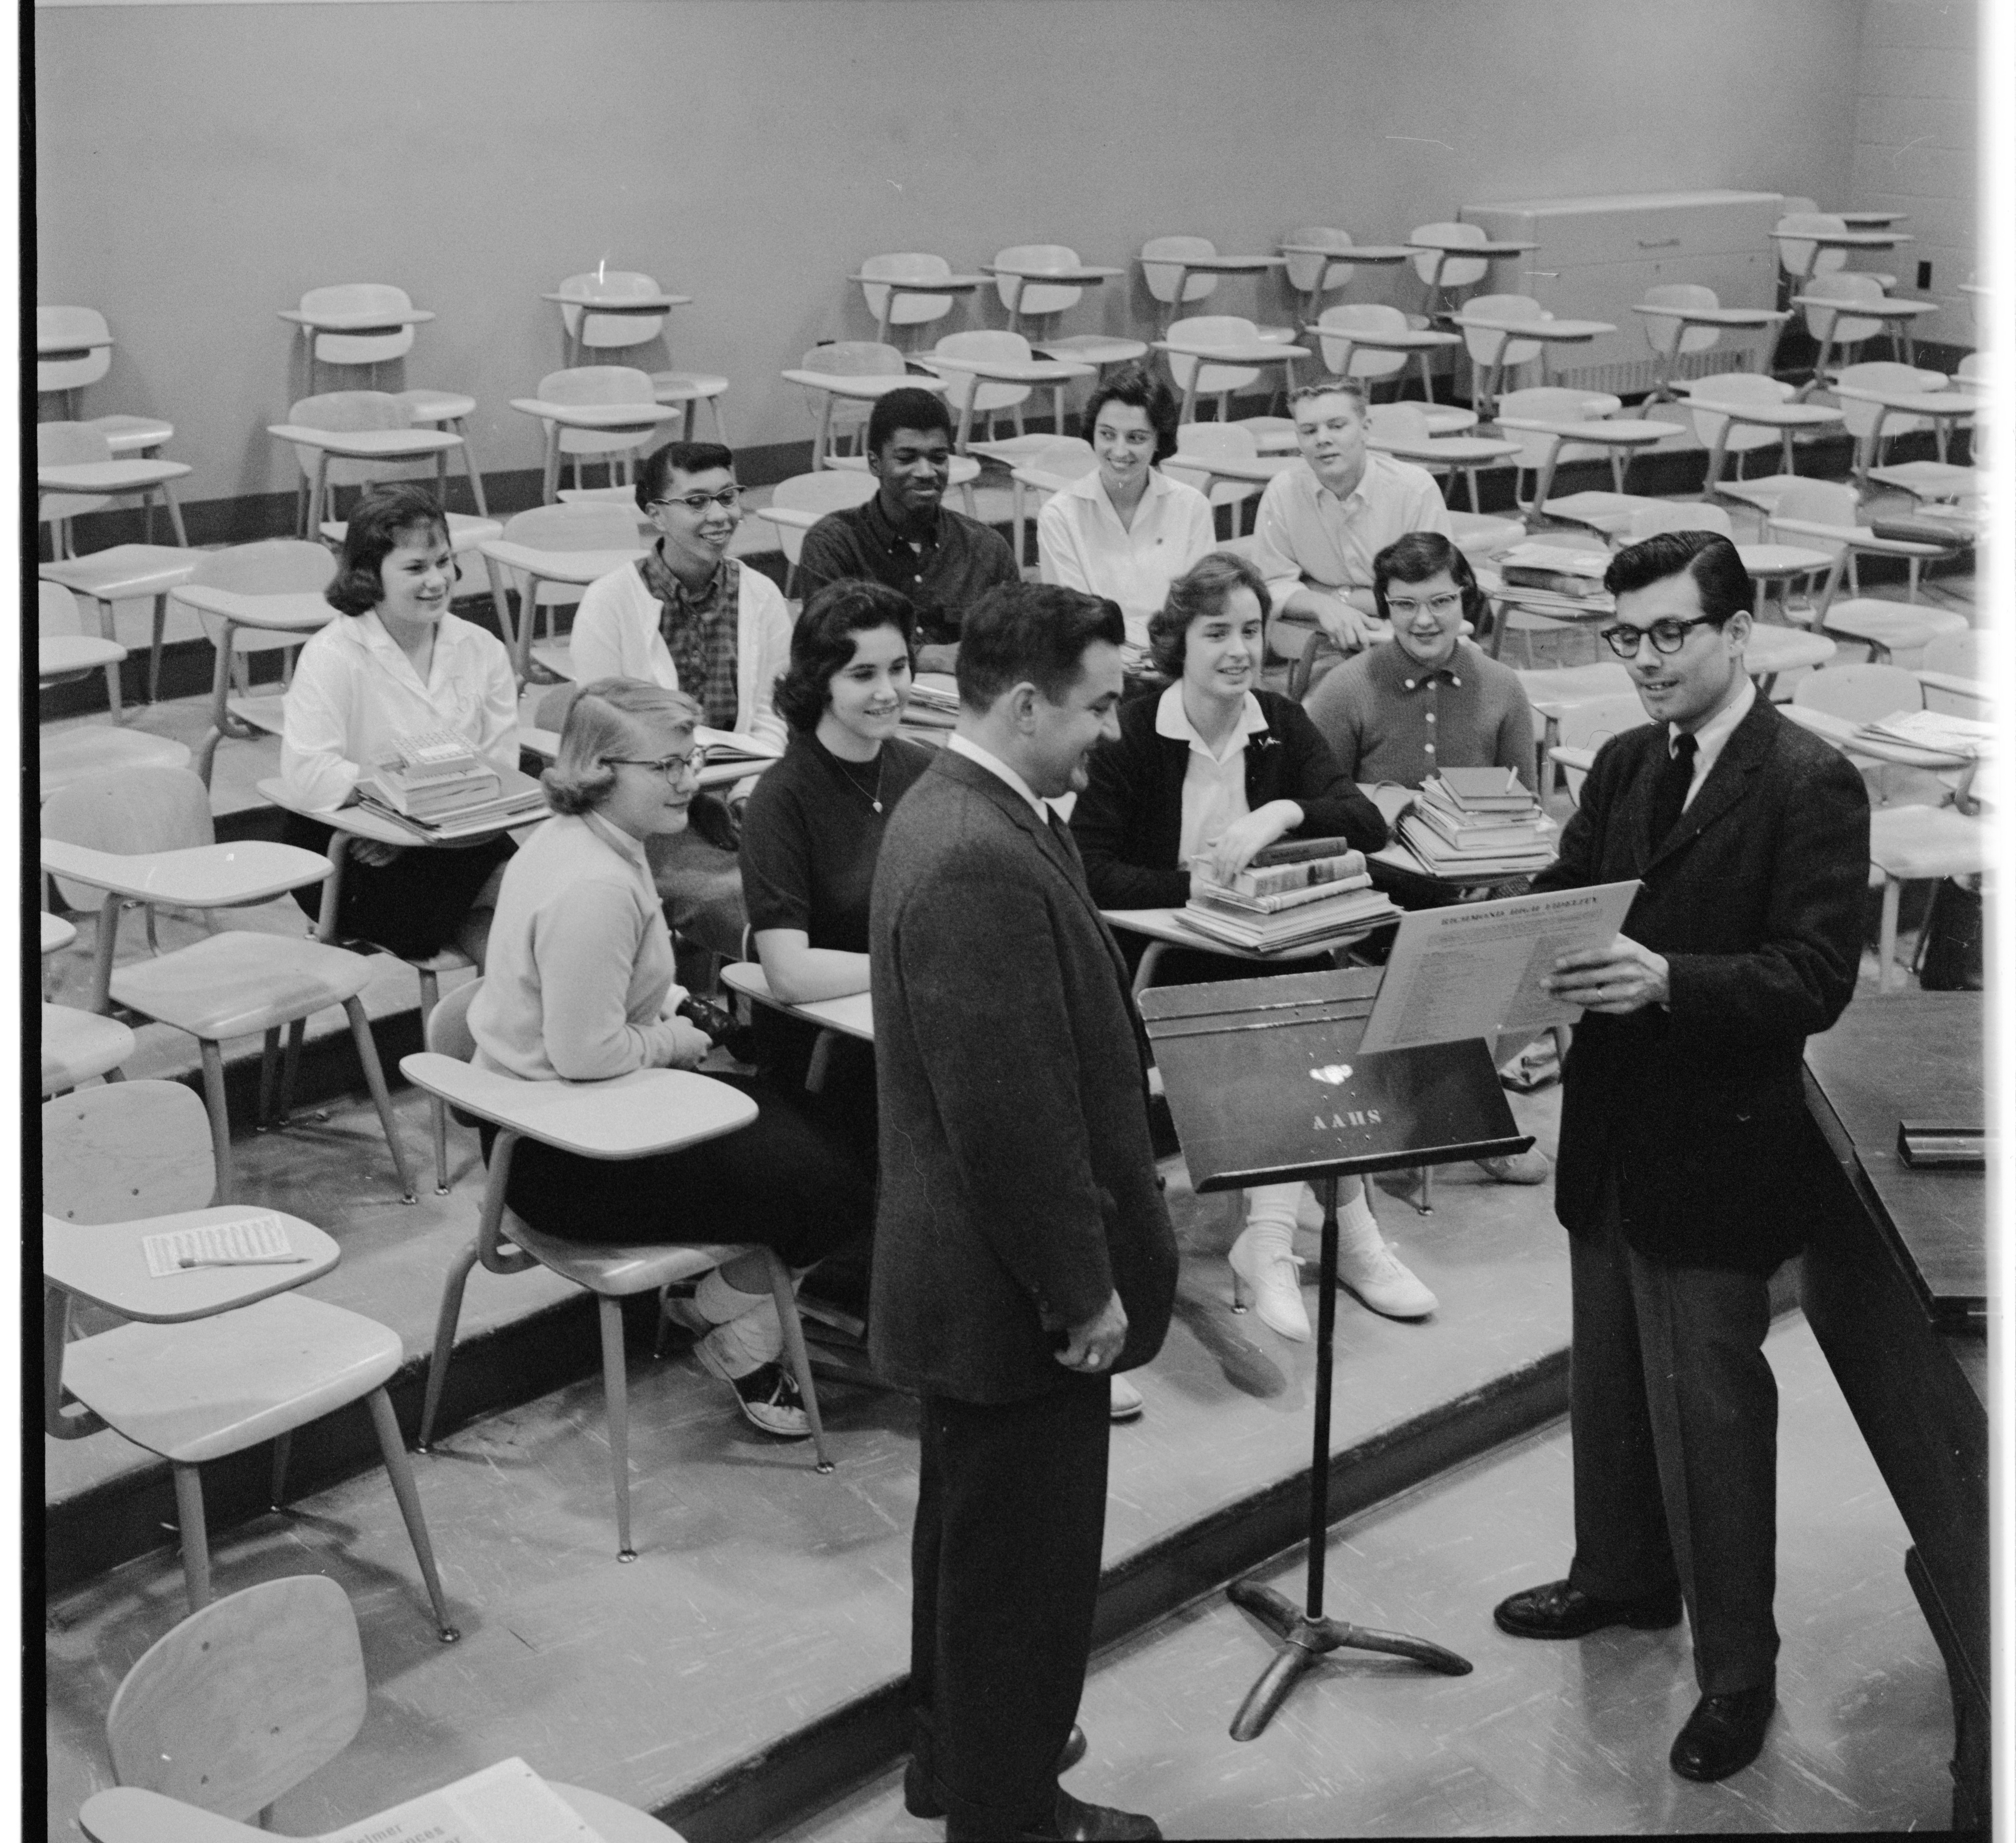 Ann Arbor High School Accepts Record Albums From Kiwanis Club of Ann Arbor, November 1959 image